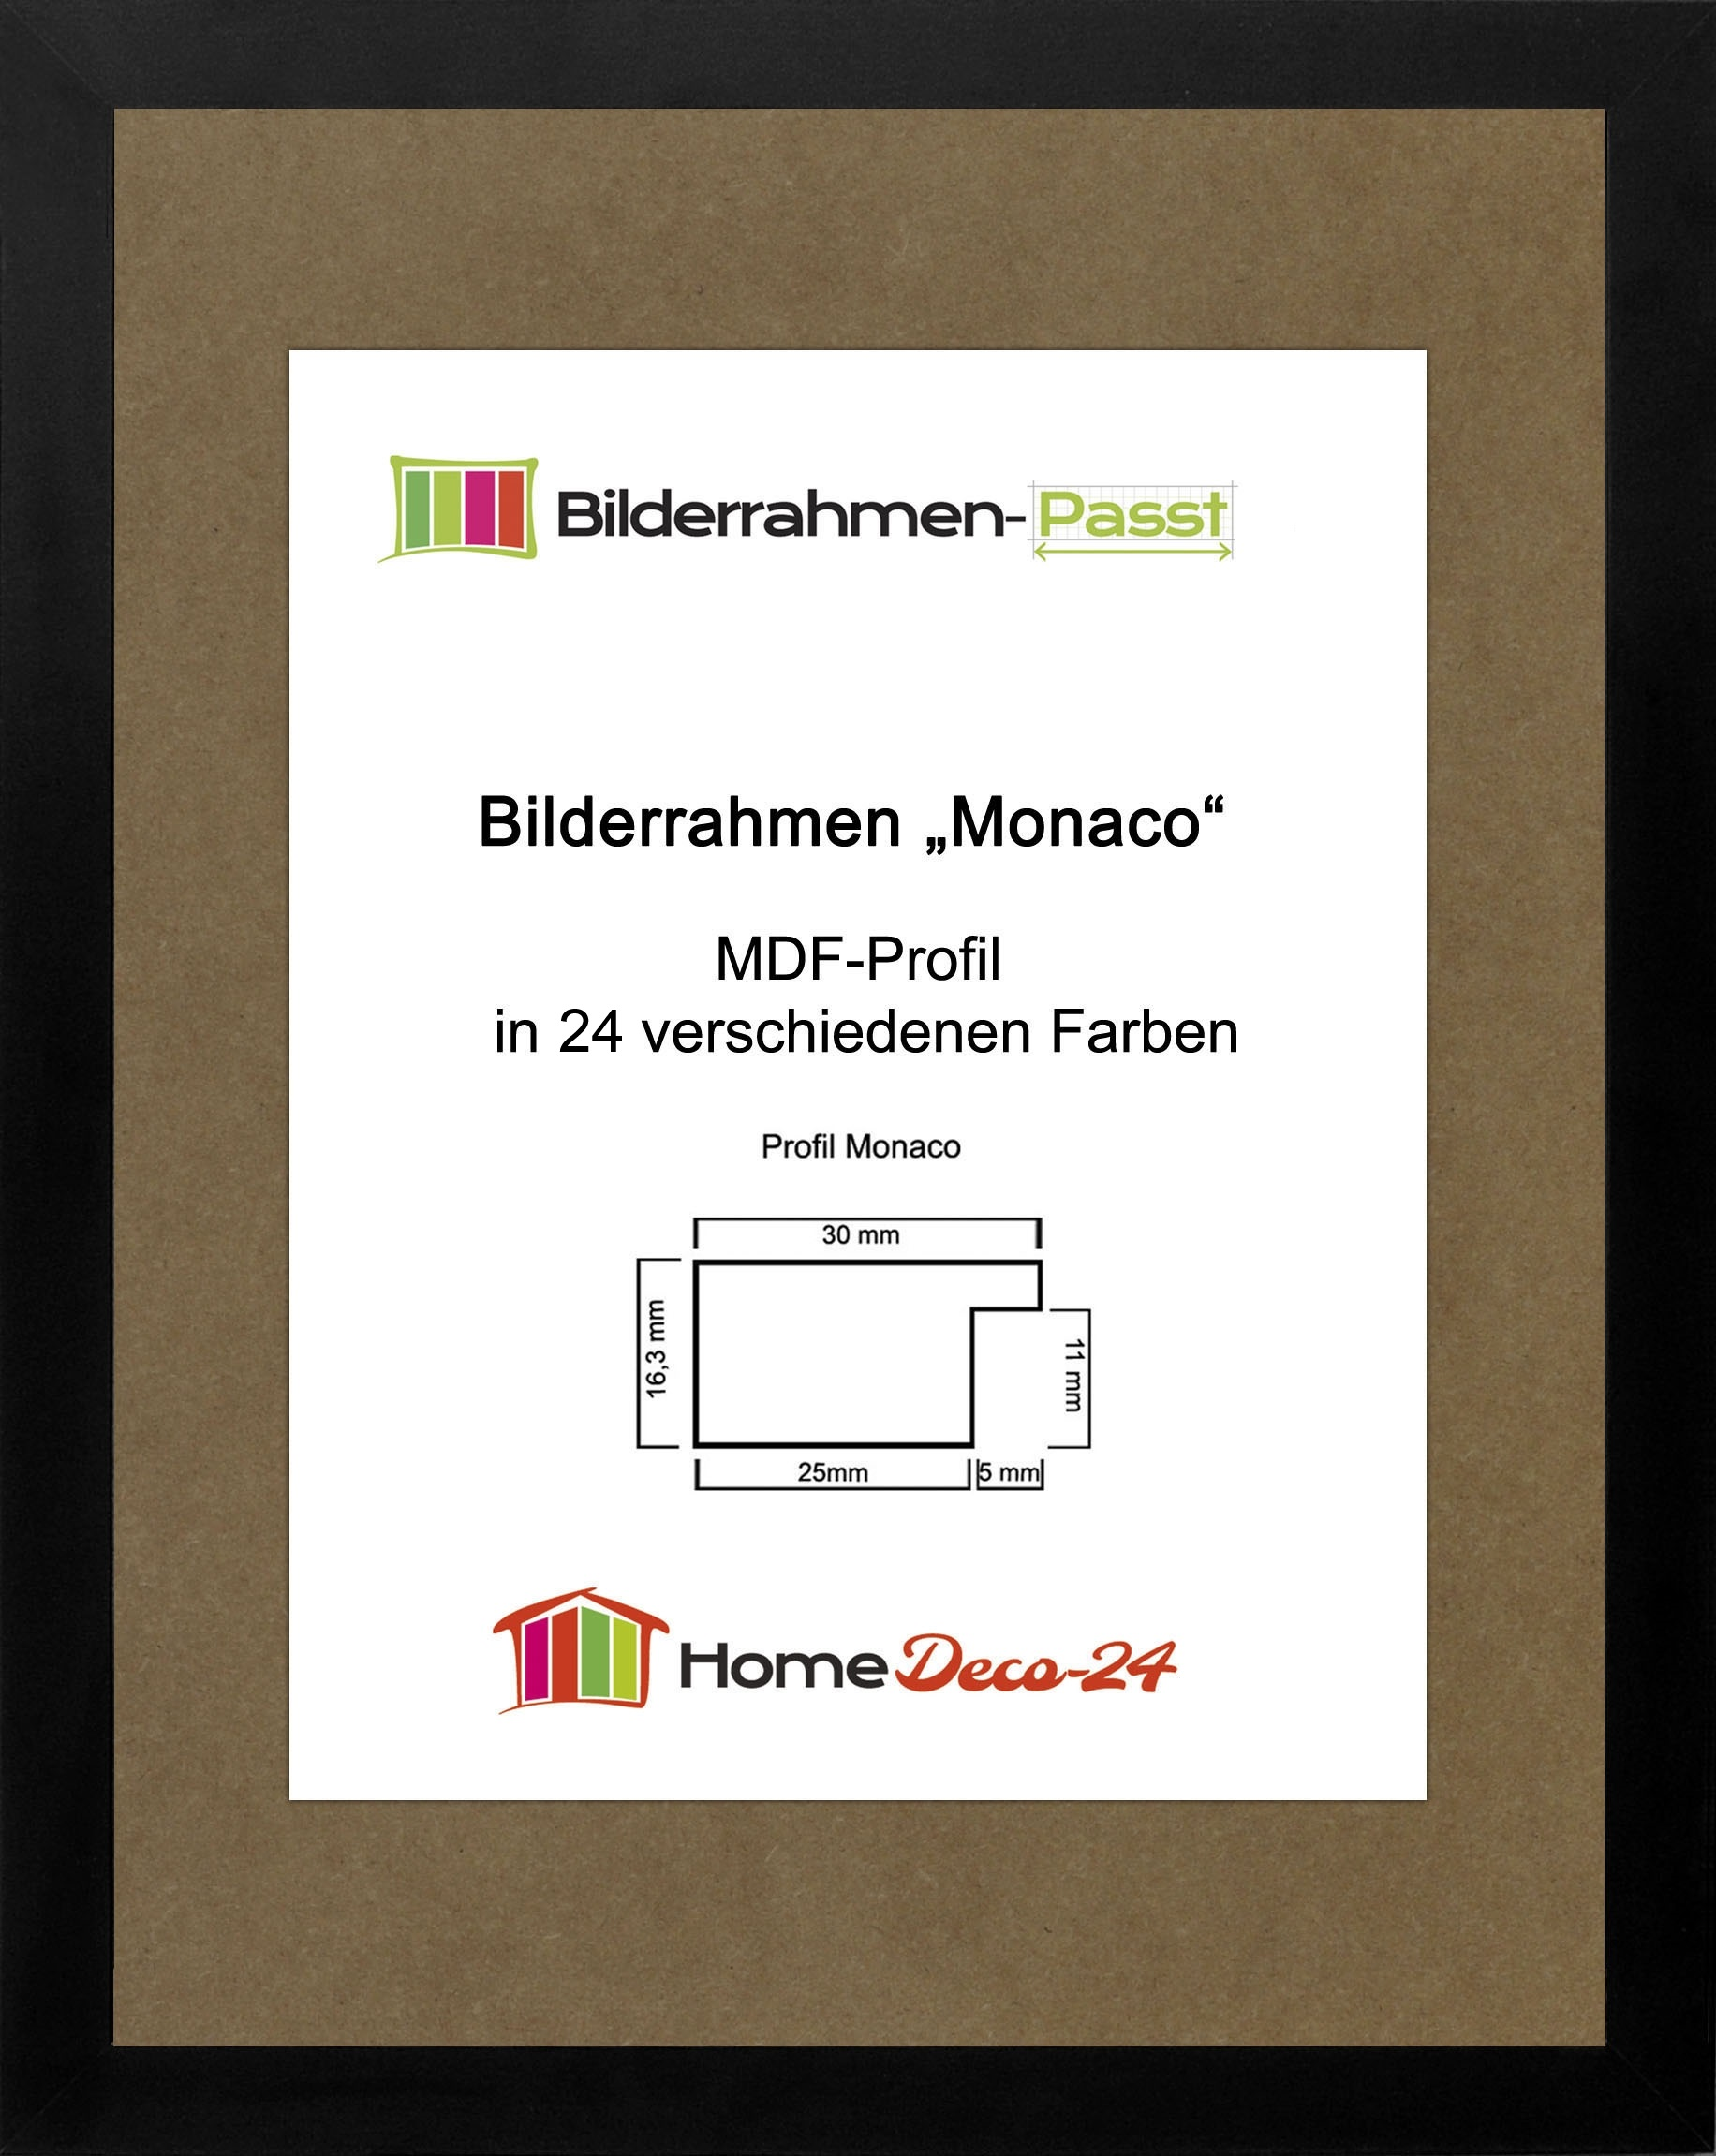 monaco 20 x 26 cm mdf bilderrahmen 26 20 cm wahl farbe und verglasung ebay. Black Bedroom Furniture Sets. Home Design Ideas